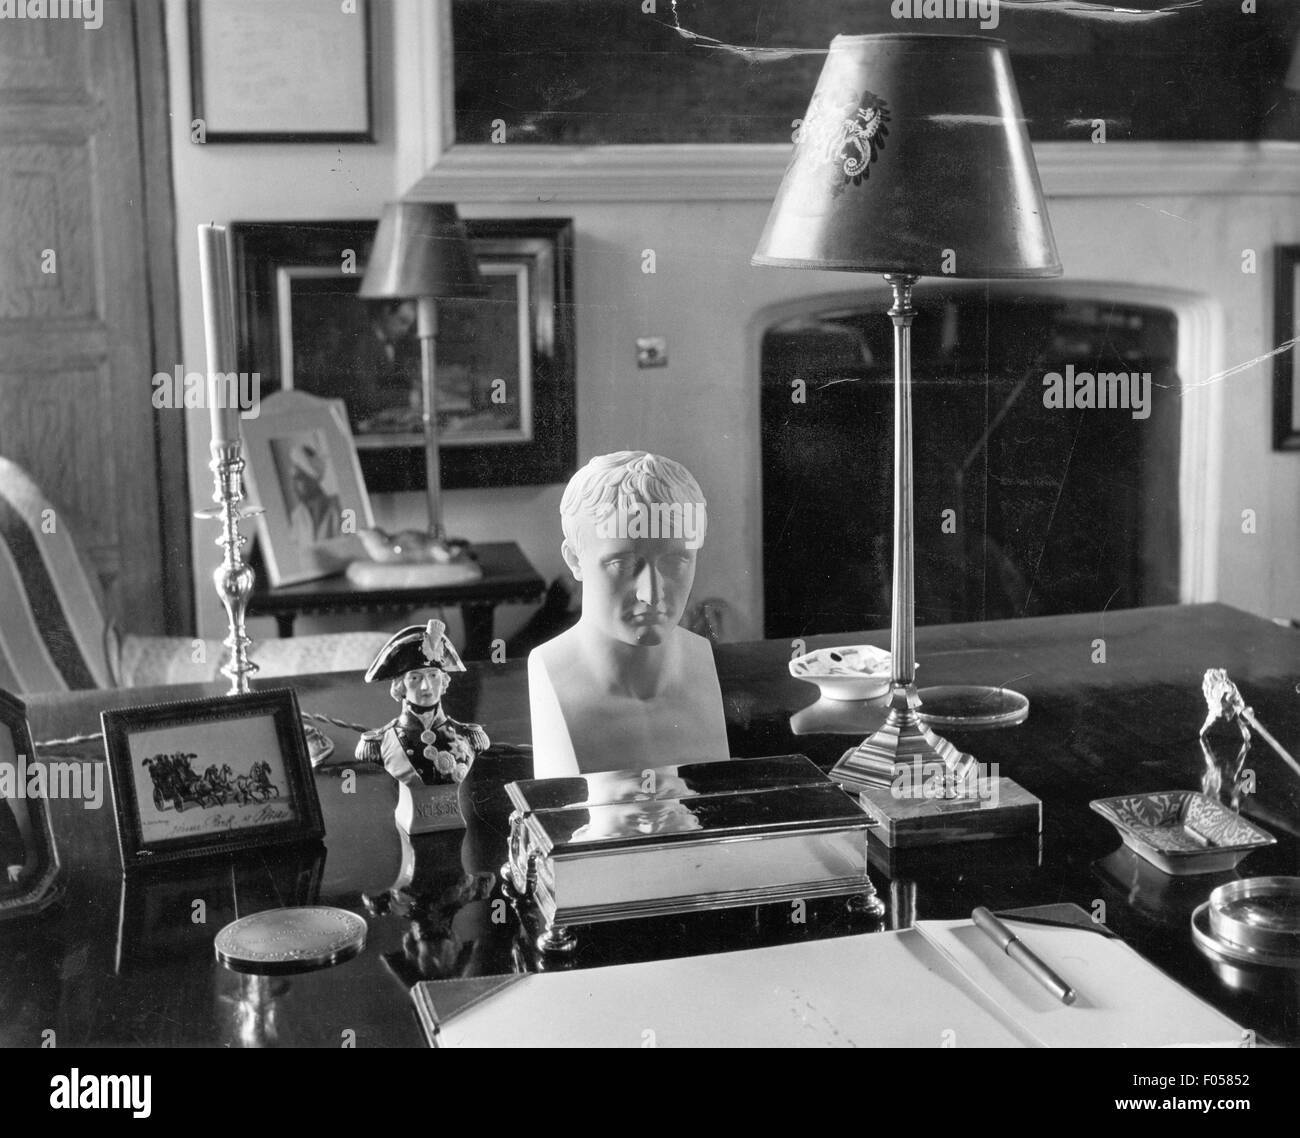 chartwell house study of winston churchill 1953 stock. Black Bedroom Furniture Sets. Home Design Ideas